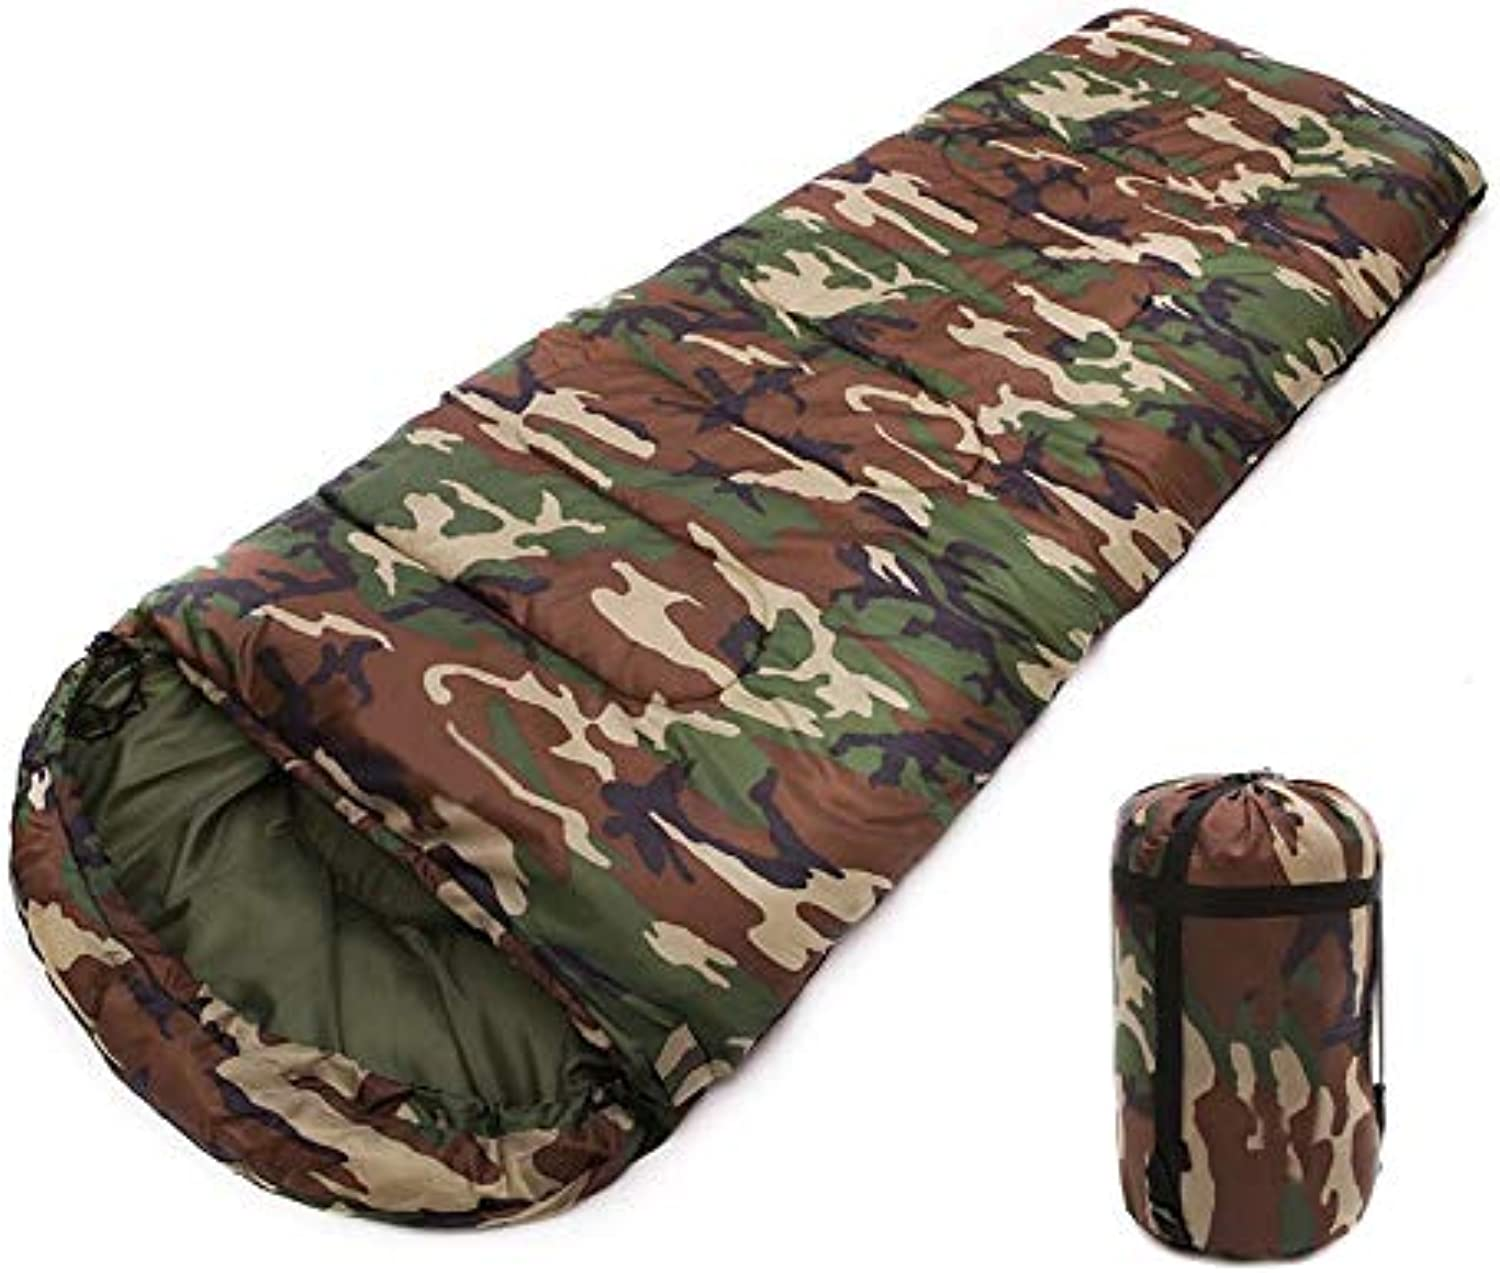 Portable Camouflage Envelope Sleeping Bag, Waterproof with Compression Sack for Traveling Camping Hiking Outdoor (Single)